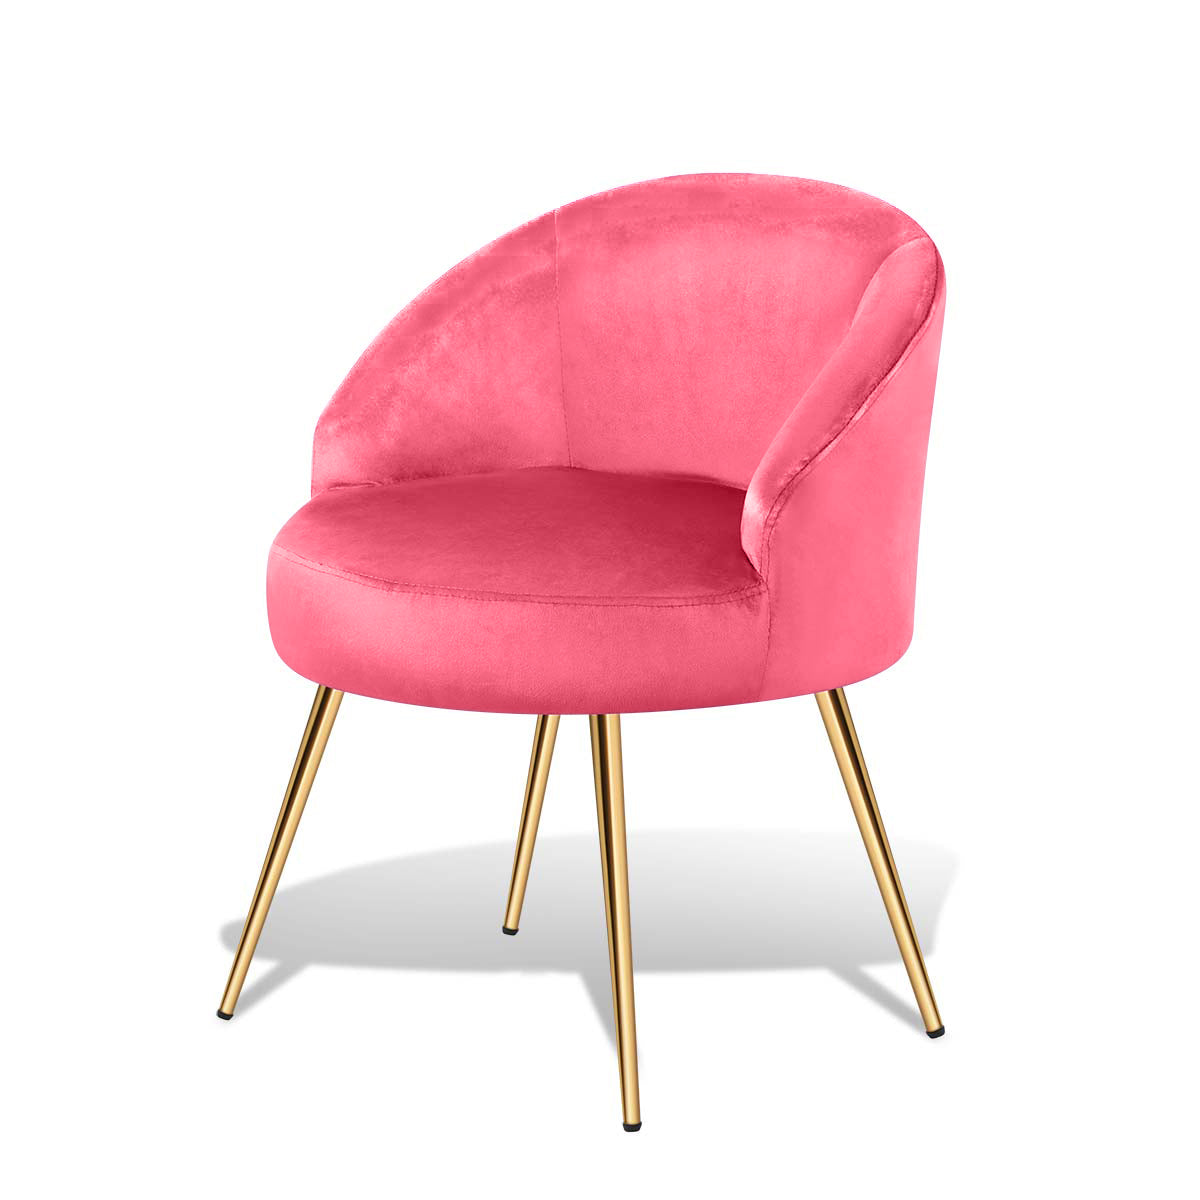 Macaron Dining Living Room Upholstered Chairs Table Side Guest Chairs